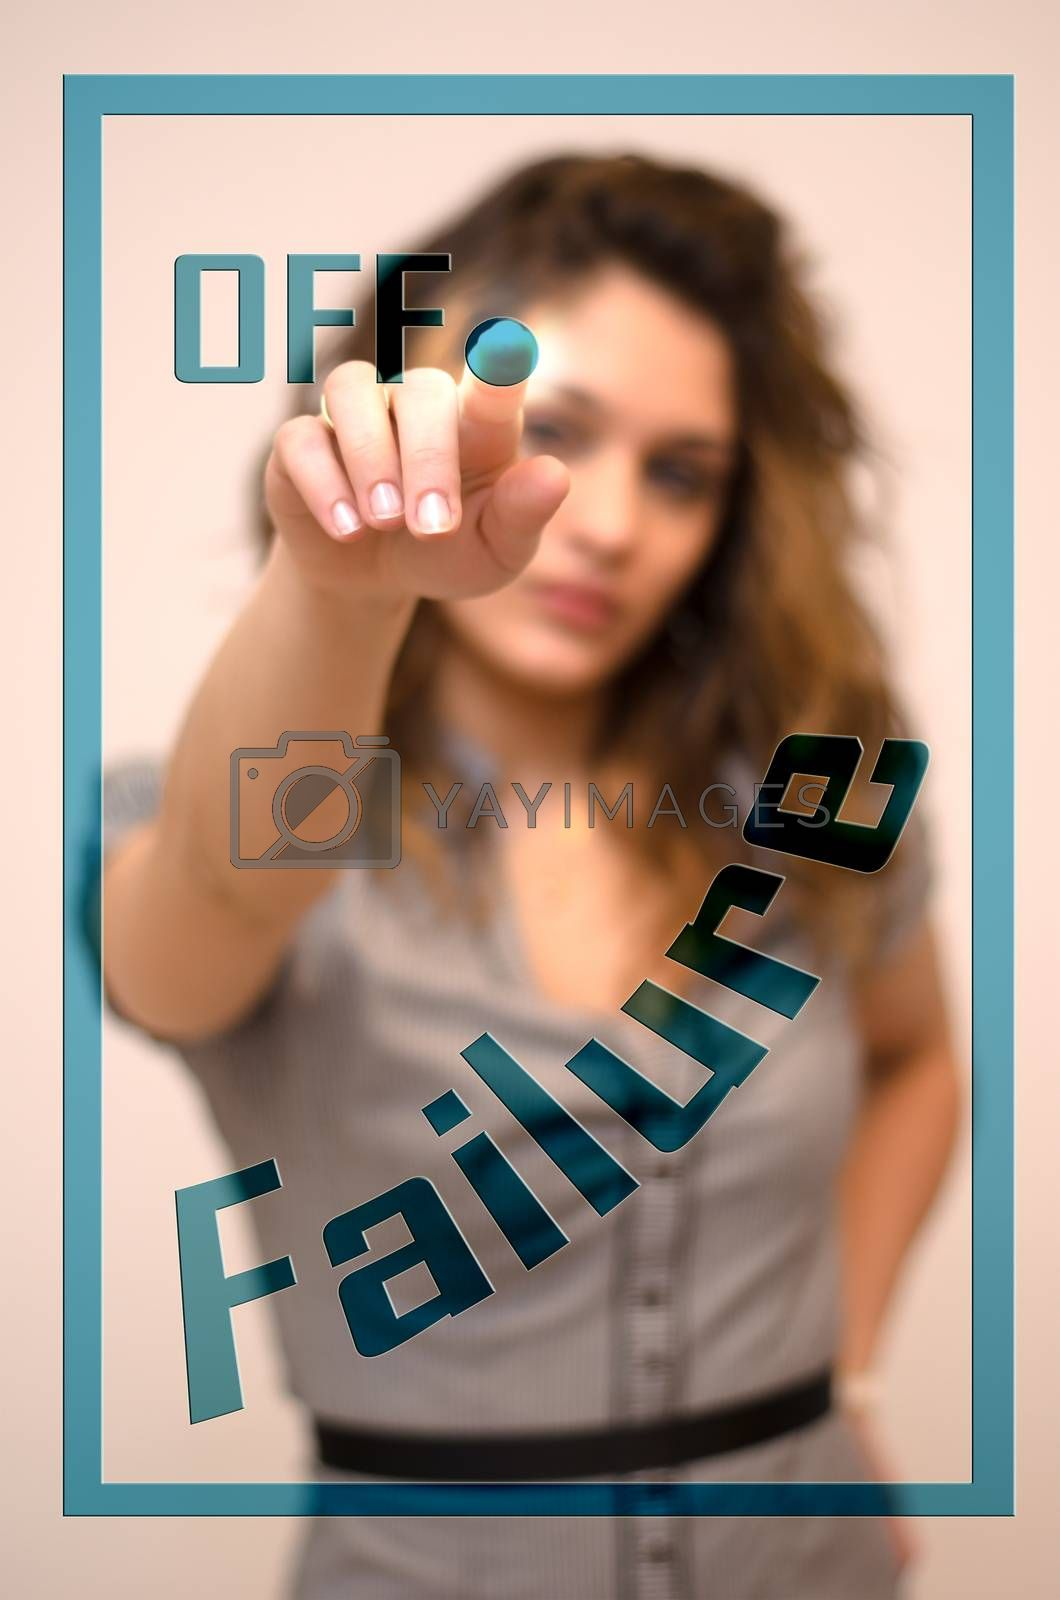 Royalty free image of woman turning off Failure on panel by vepar5